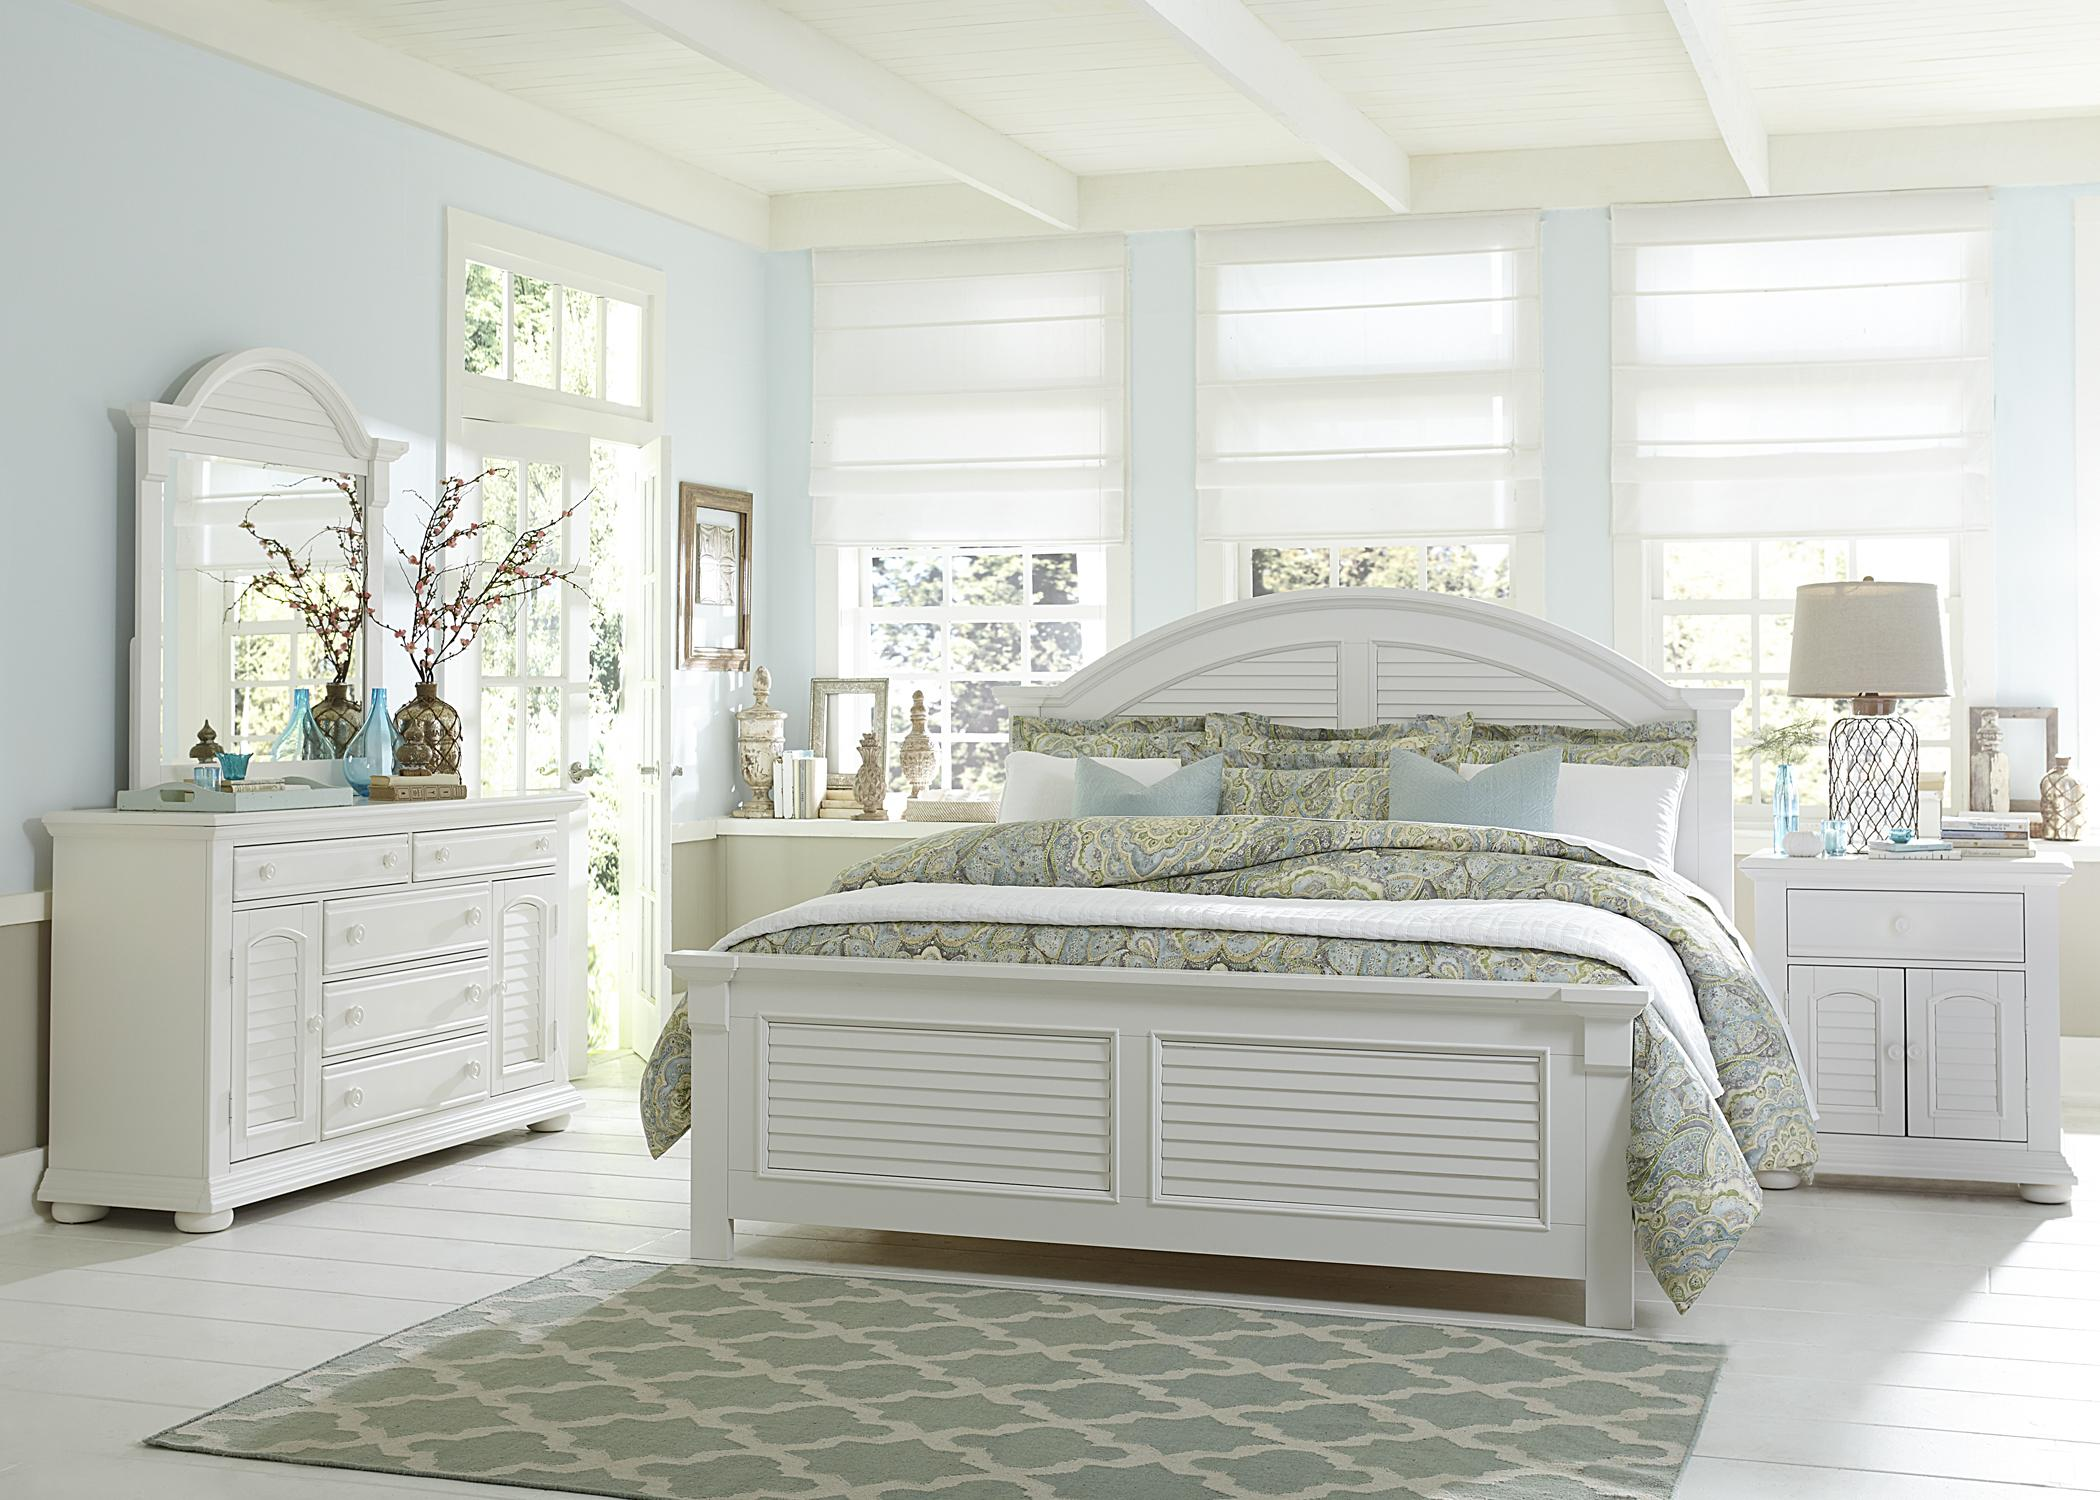 Liberty Furniture Summer House Queen Bedroom Group - Item Number: 607 Q Bedroom Group 1